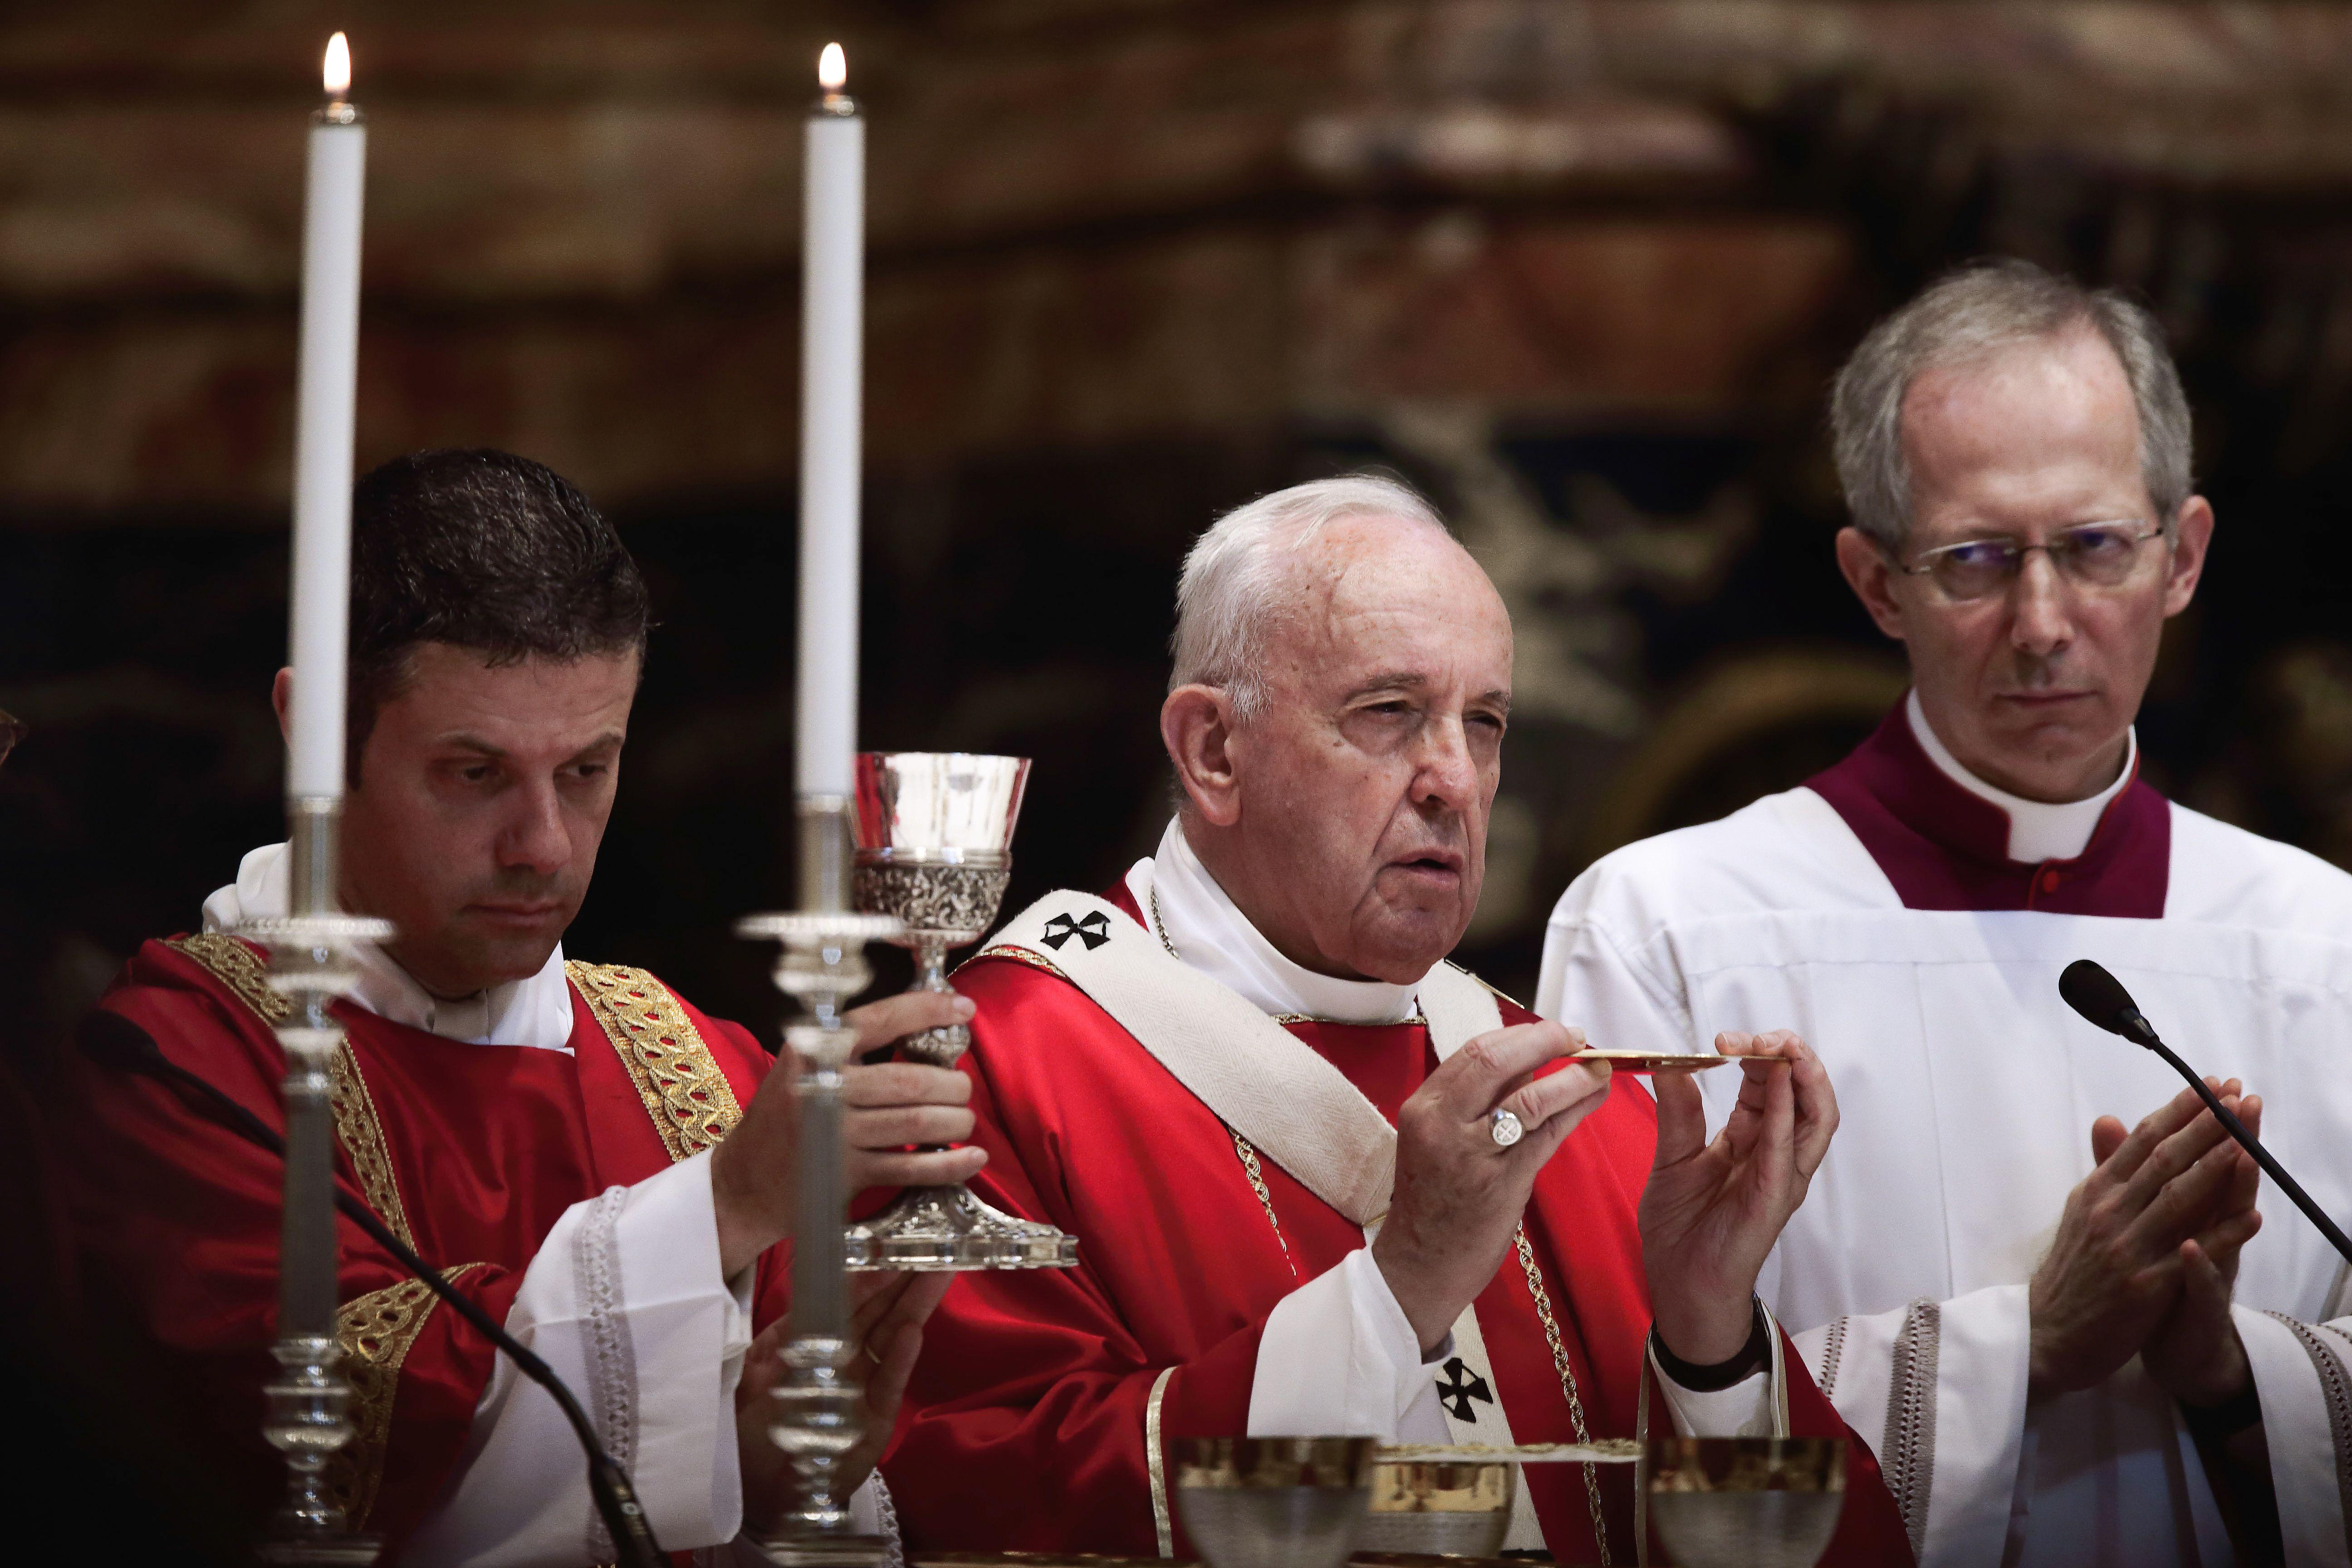 Married men as priests? This could be the start of a Roman Catholic revolution